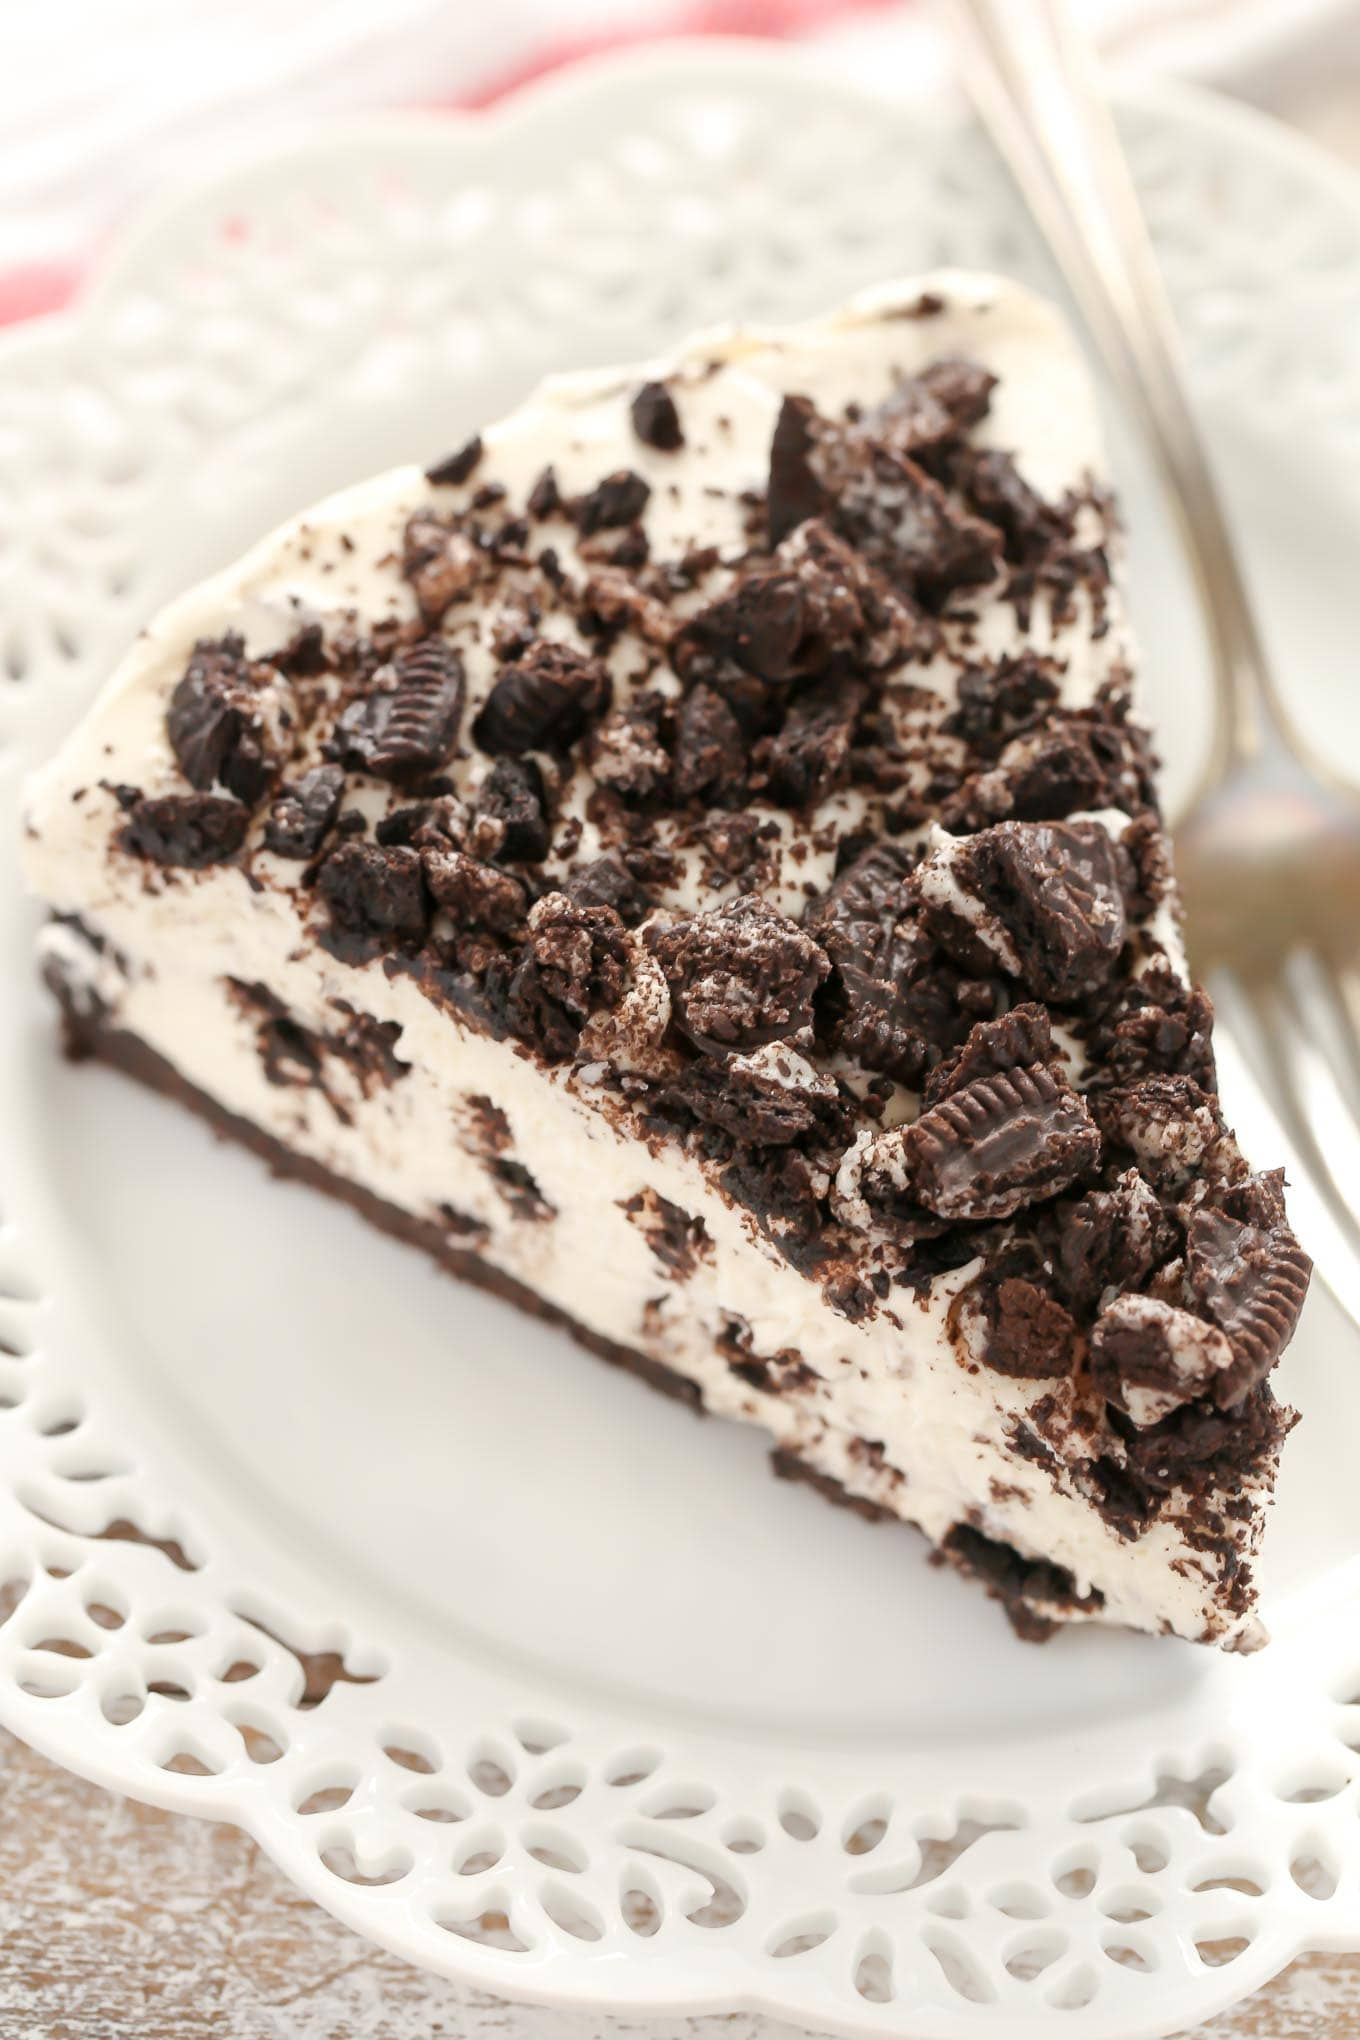 An overhead view of a slice of Oreo cheesecake on a white plate with a fork.